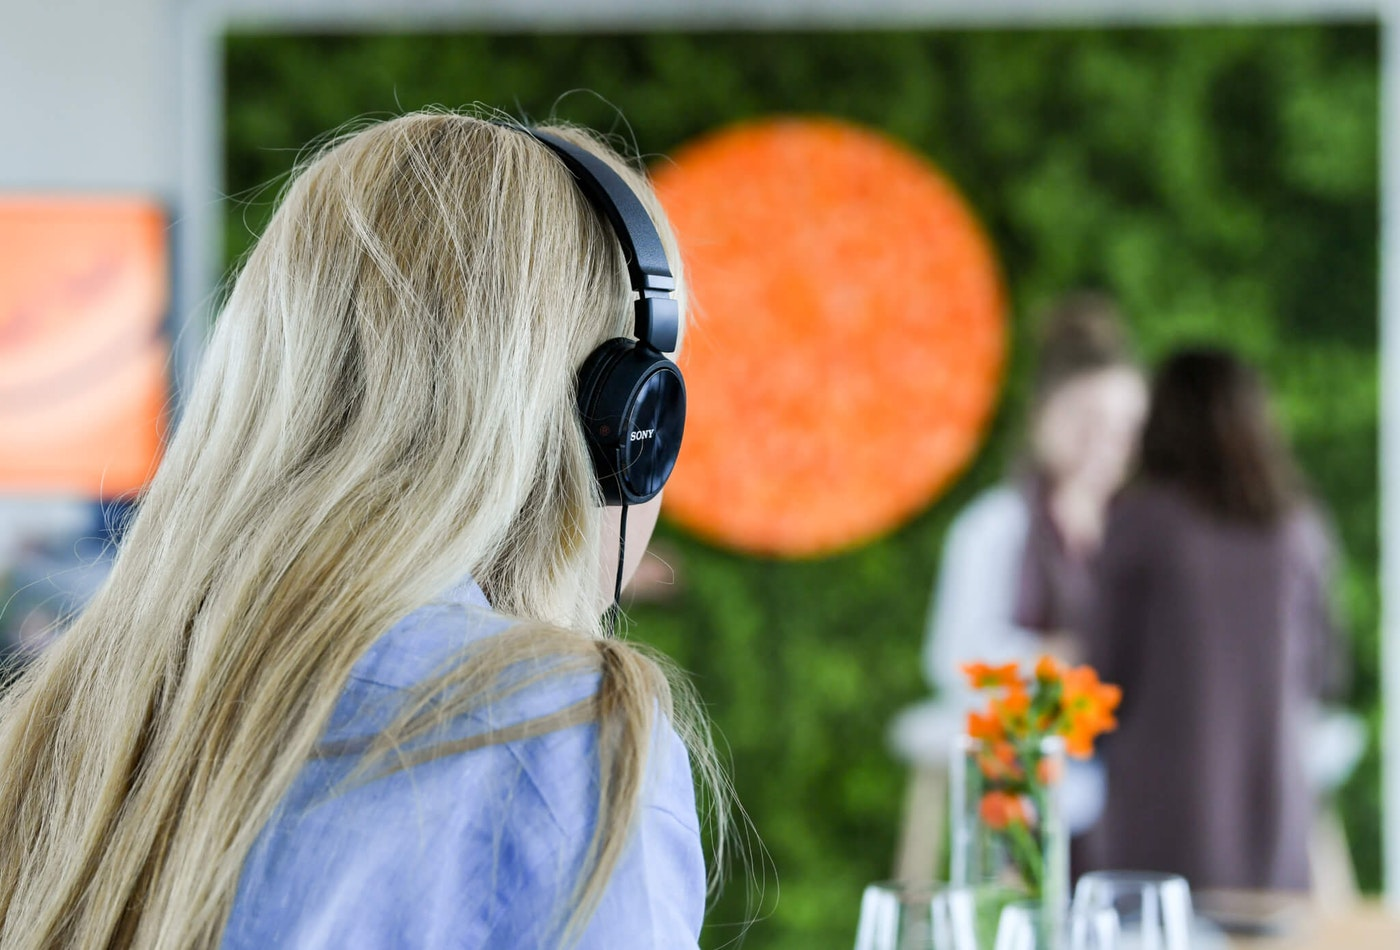 13 March 2019, Berlin: A woman listens to the Headspace meditation app, which has 40 million users worldwide, with headphones at a press event to present the new German-language offering. The app is designed to help you cope with stress. Photo: Jens Kalaene/dpa-Zentralbild/ZB (Photo by Jens Kalaene/picture alliance via Getty Images)